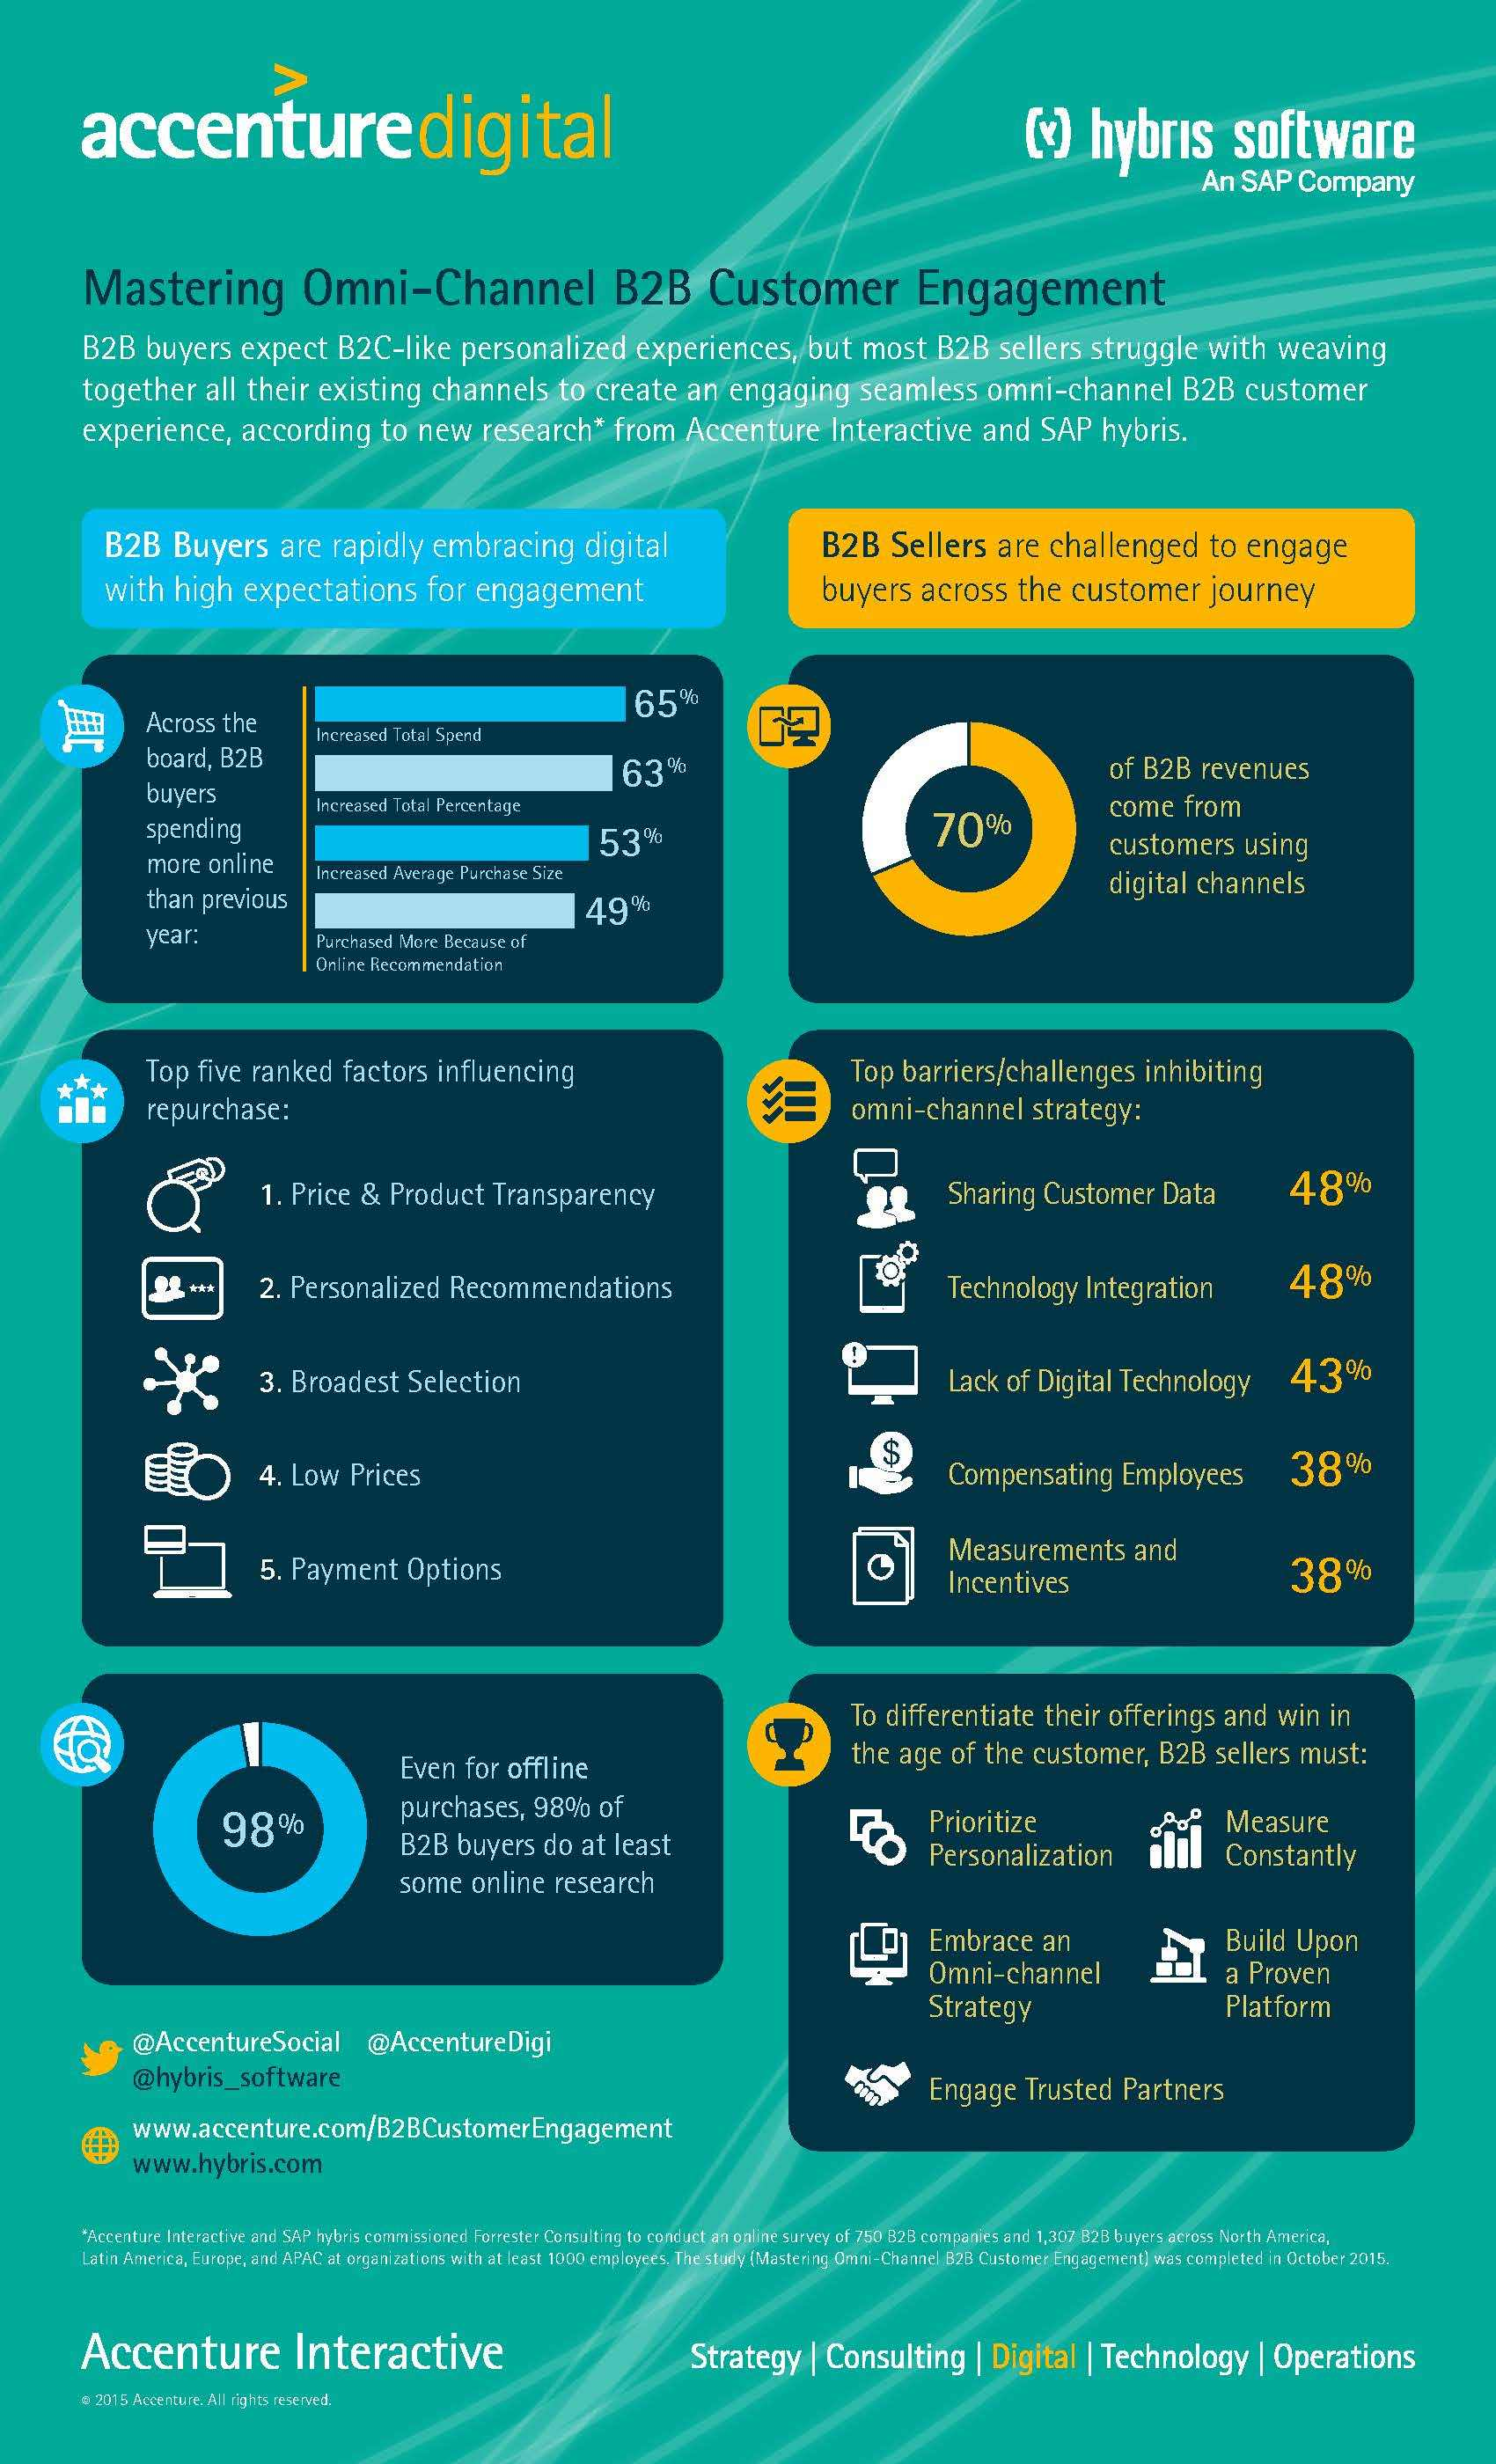 Omni-Channel Experience is Critical to Fueling B2B Customer ...